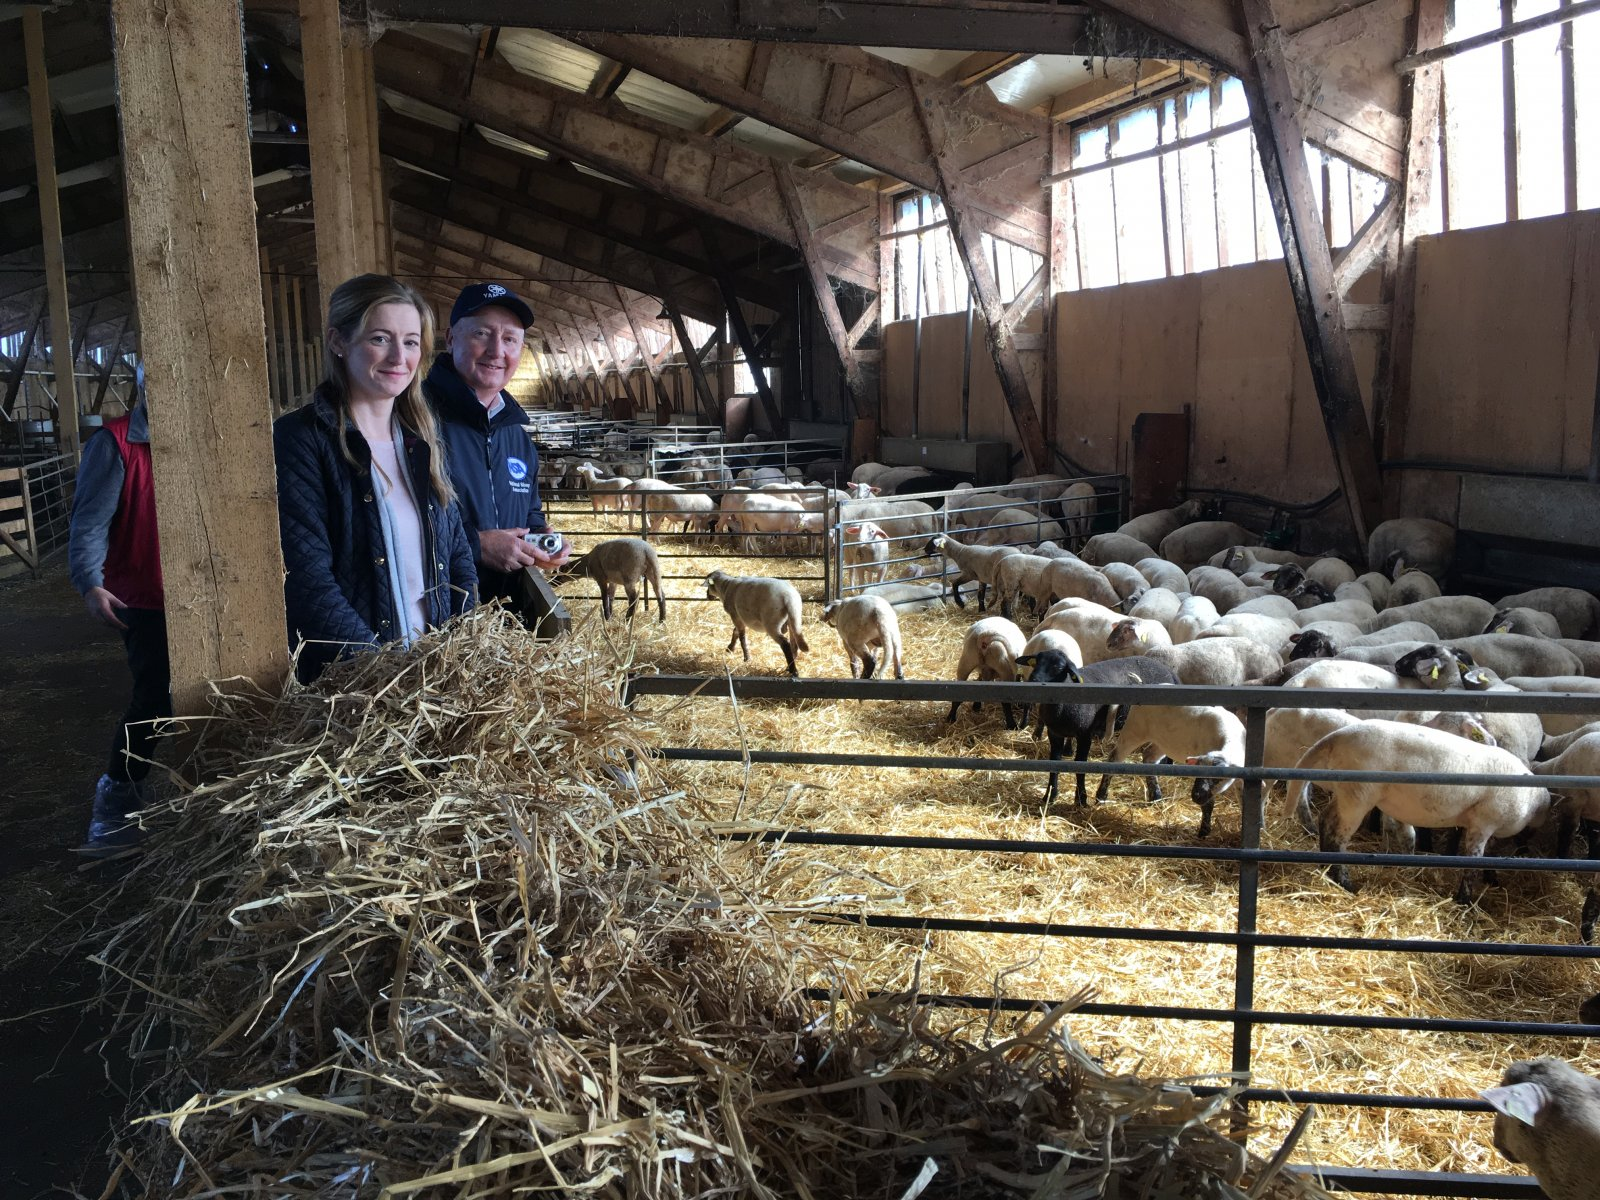 Eileen McCloskey and John Blaney inspect sheep at Du Mourier Farm